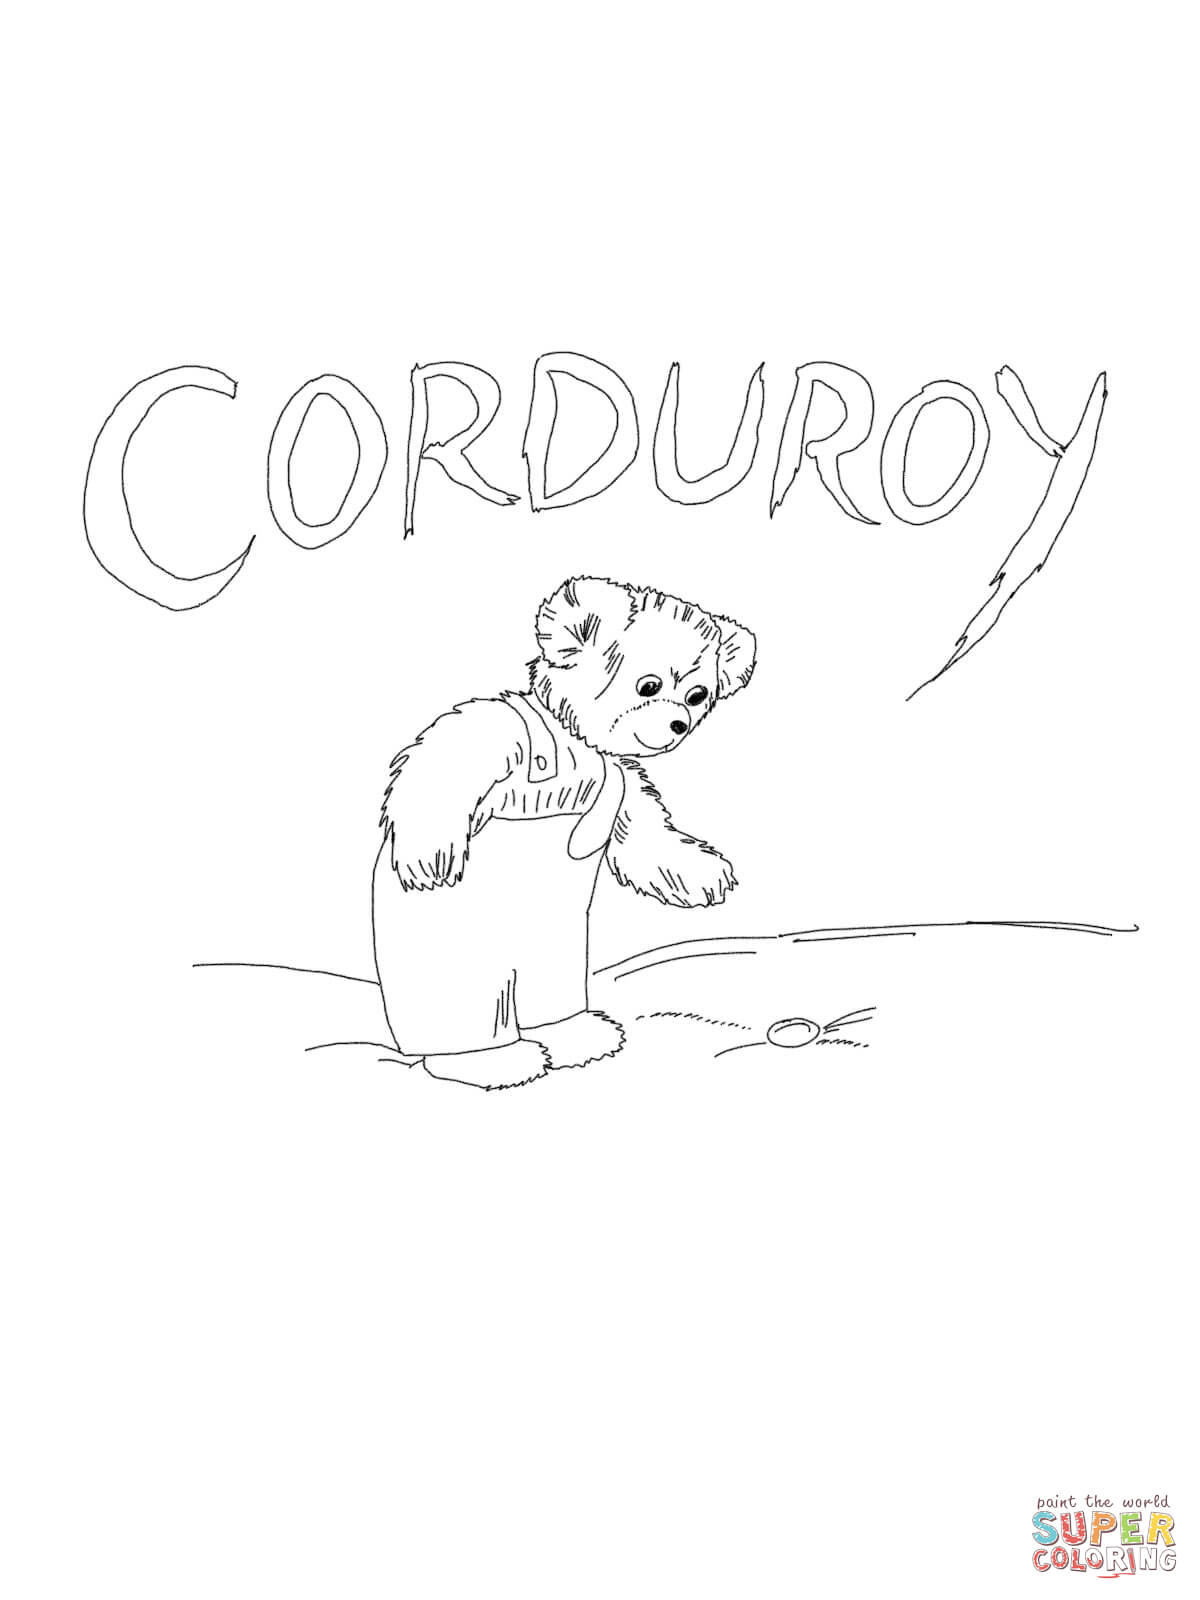 corduroy coloring pages - photo#4